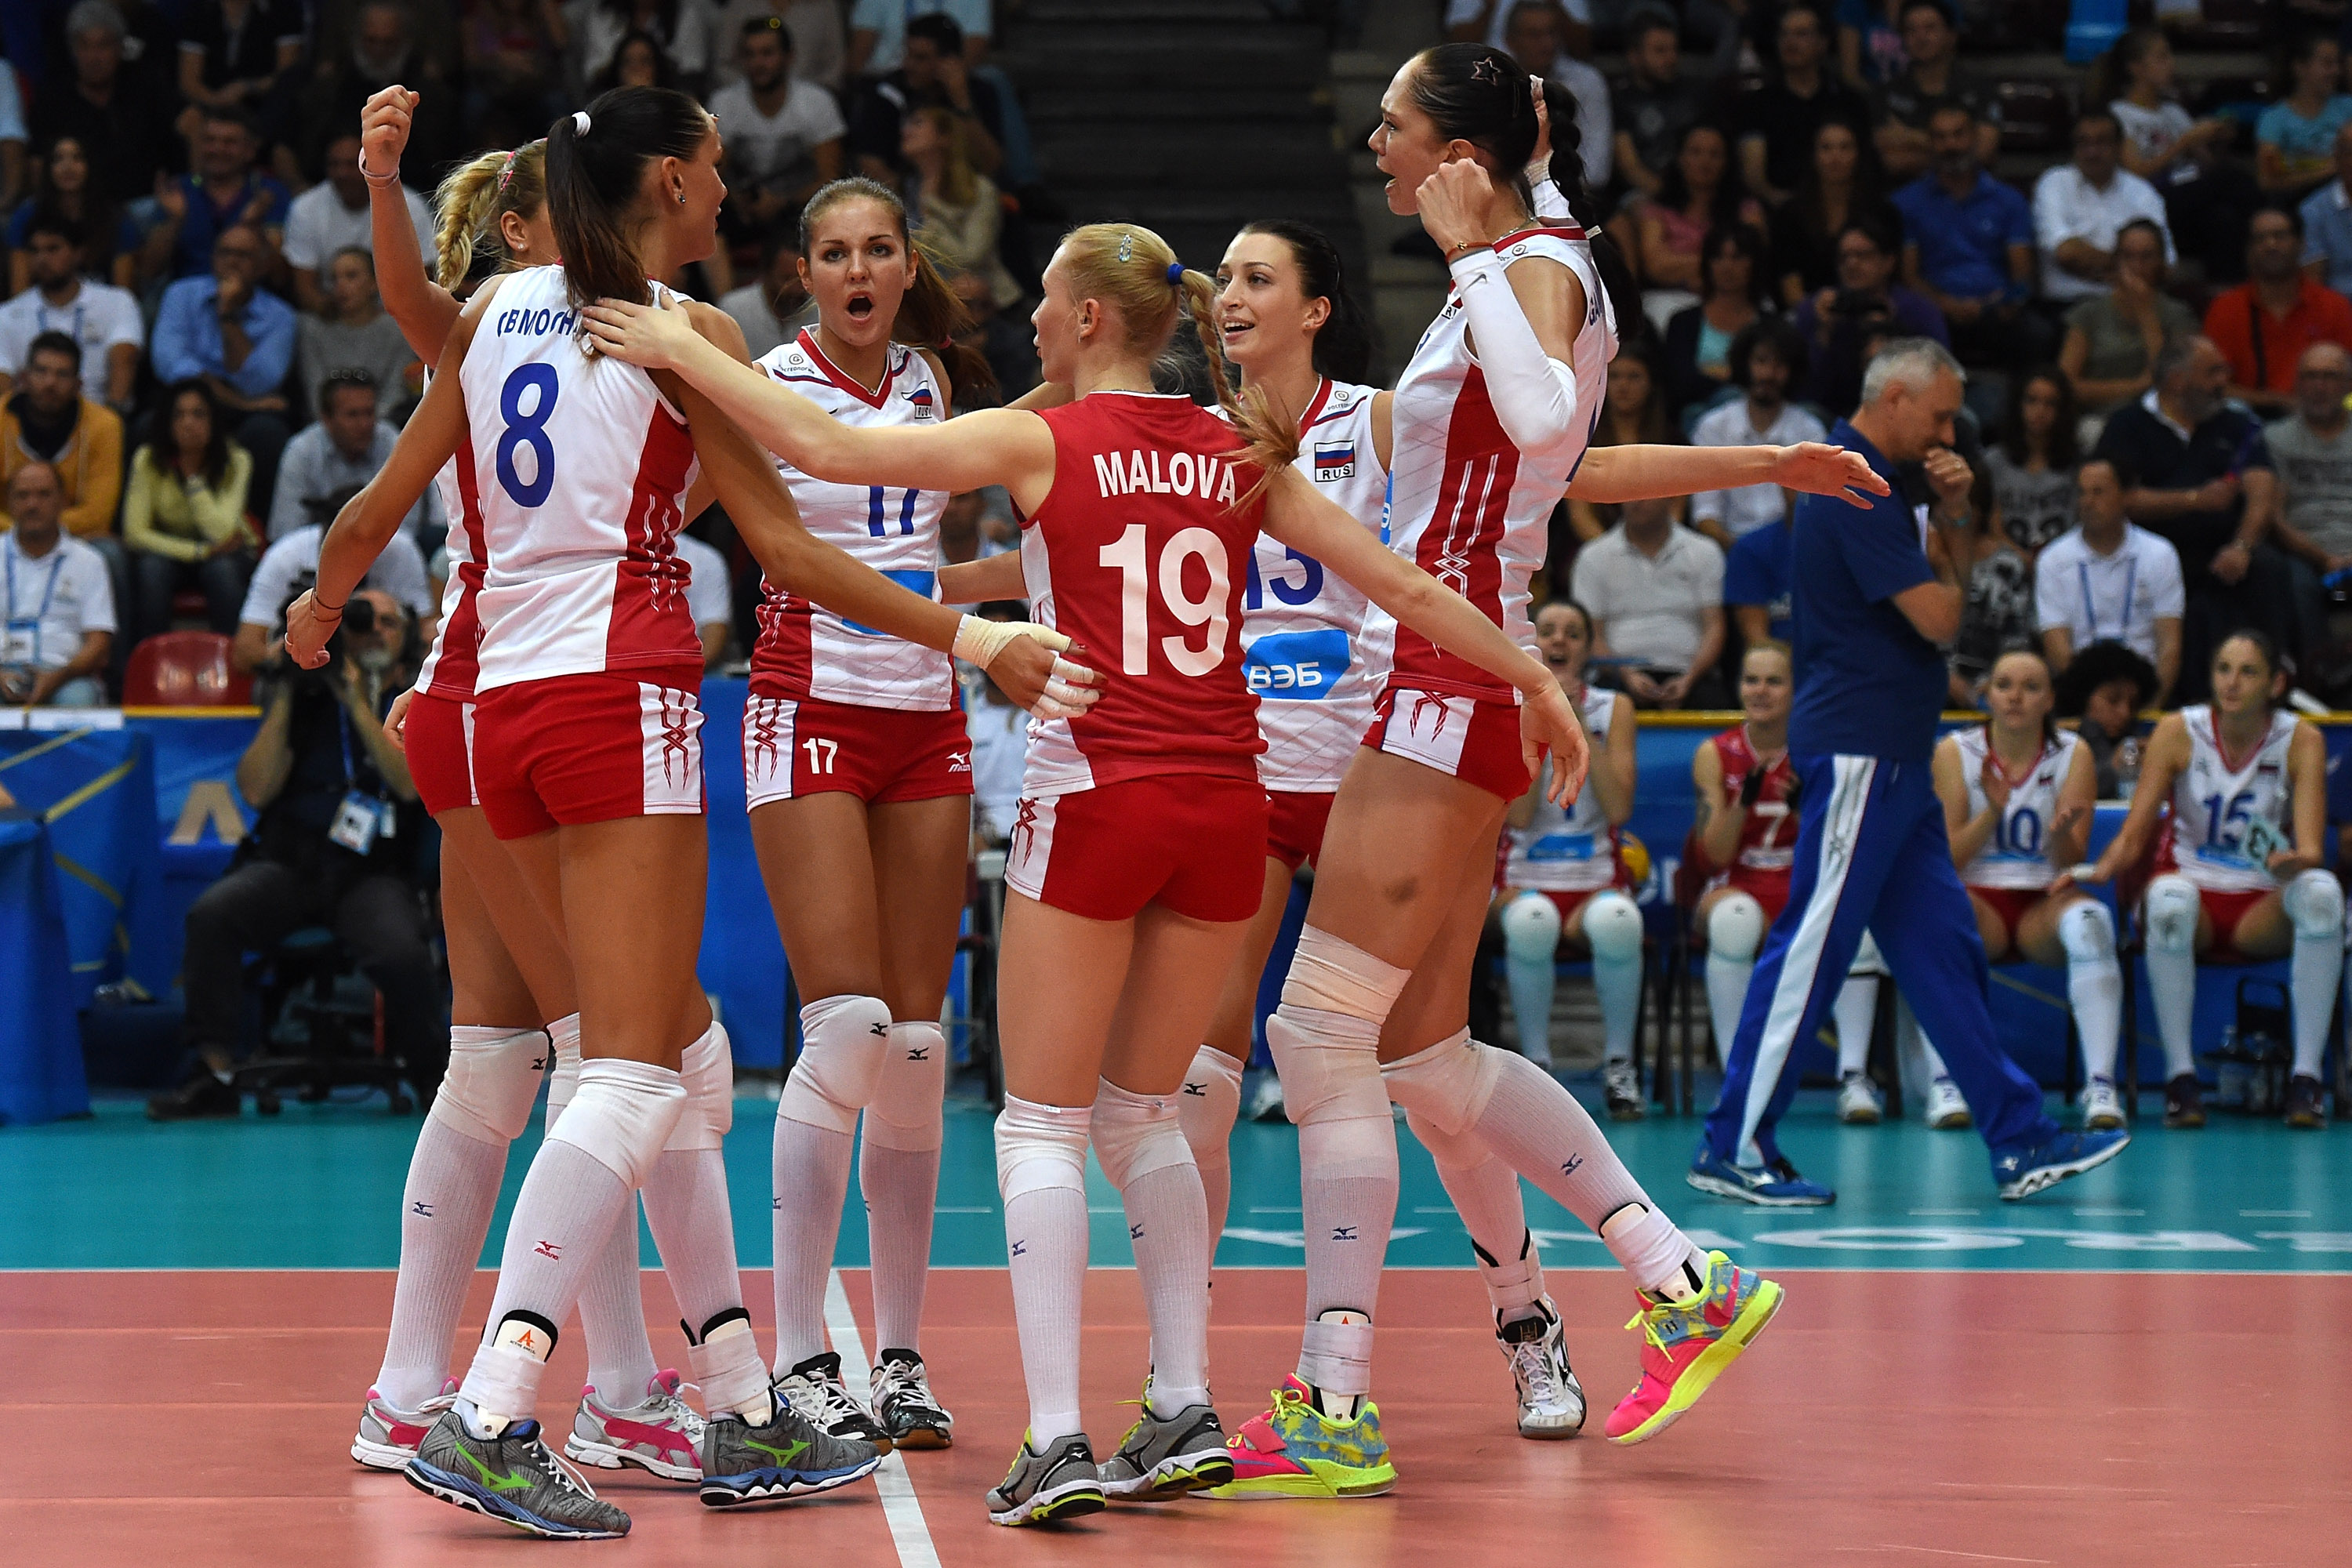 THE FINAL ROUND of the 2014 FIVB Women's World Championship